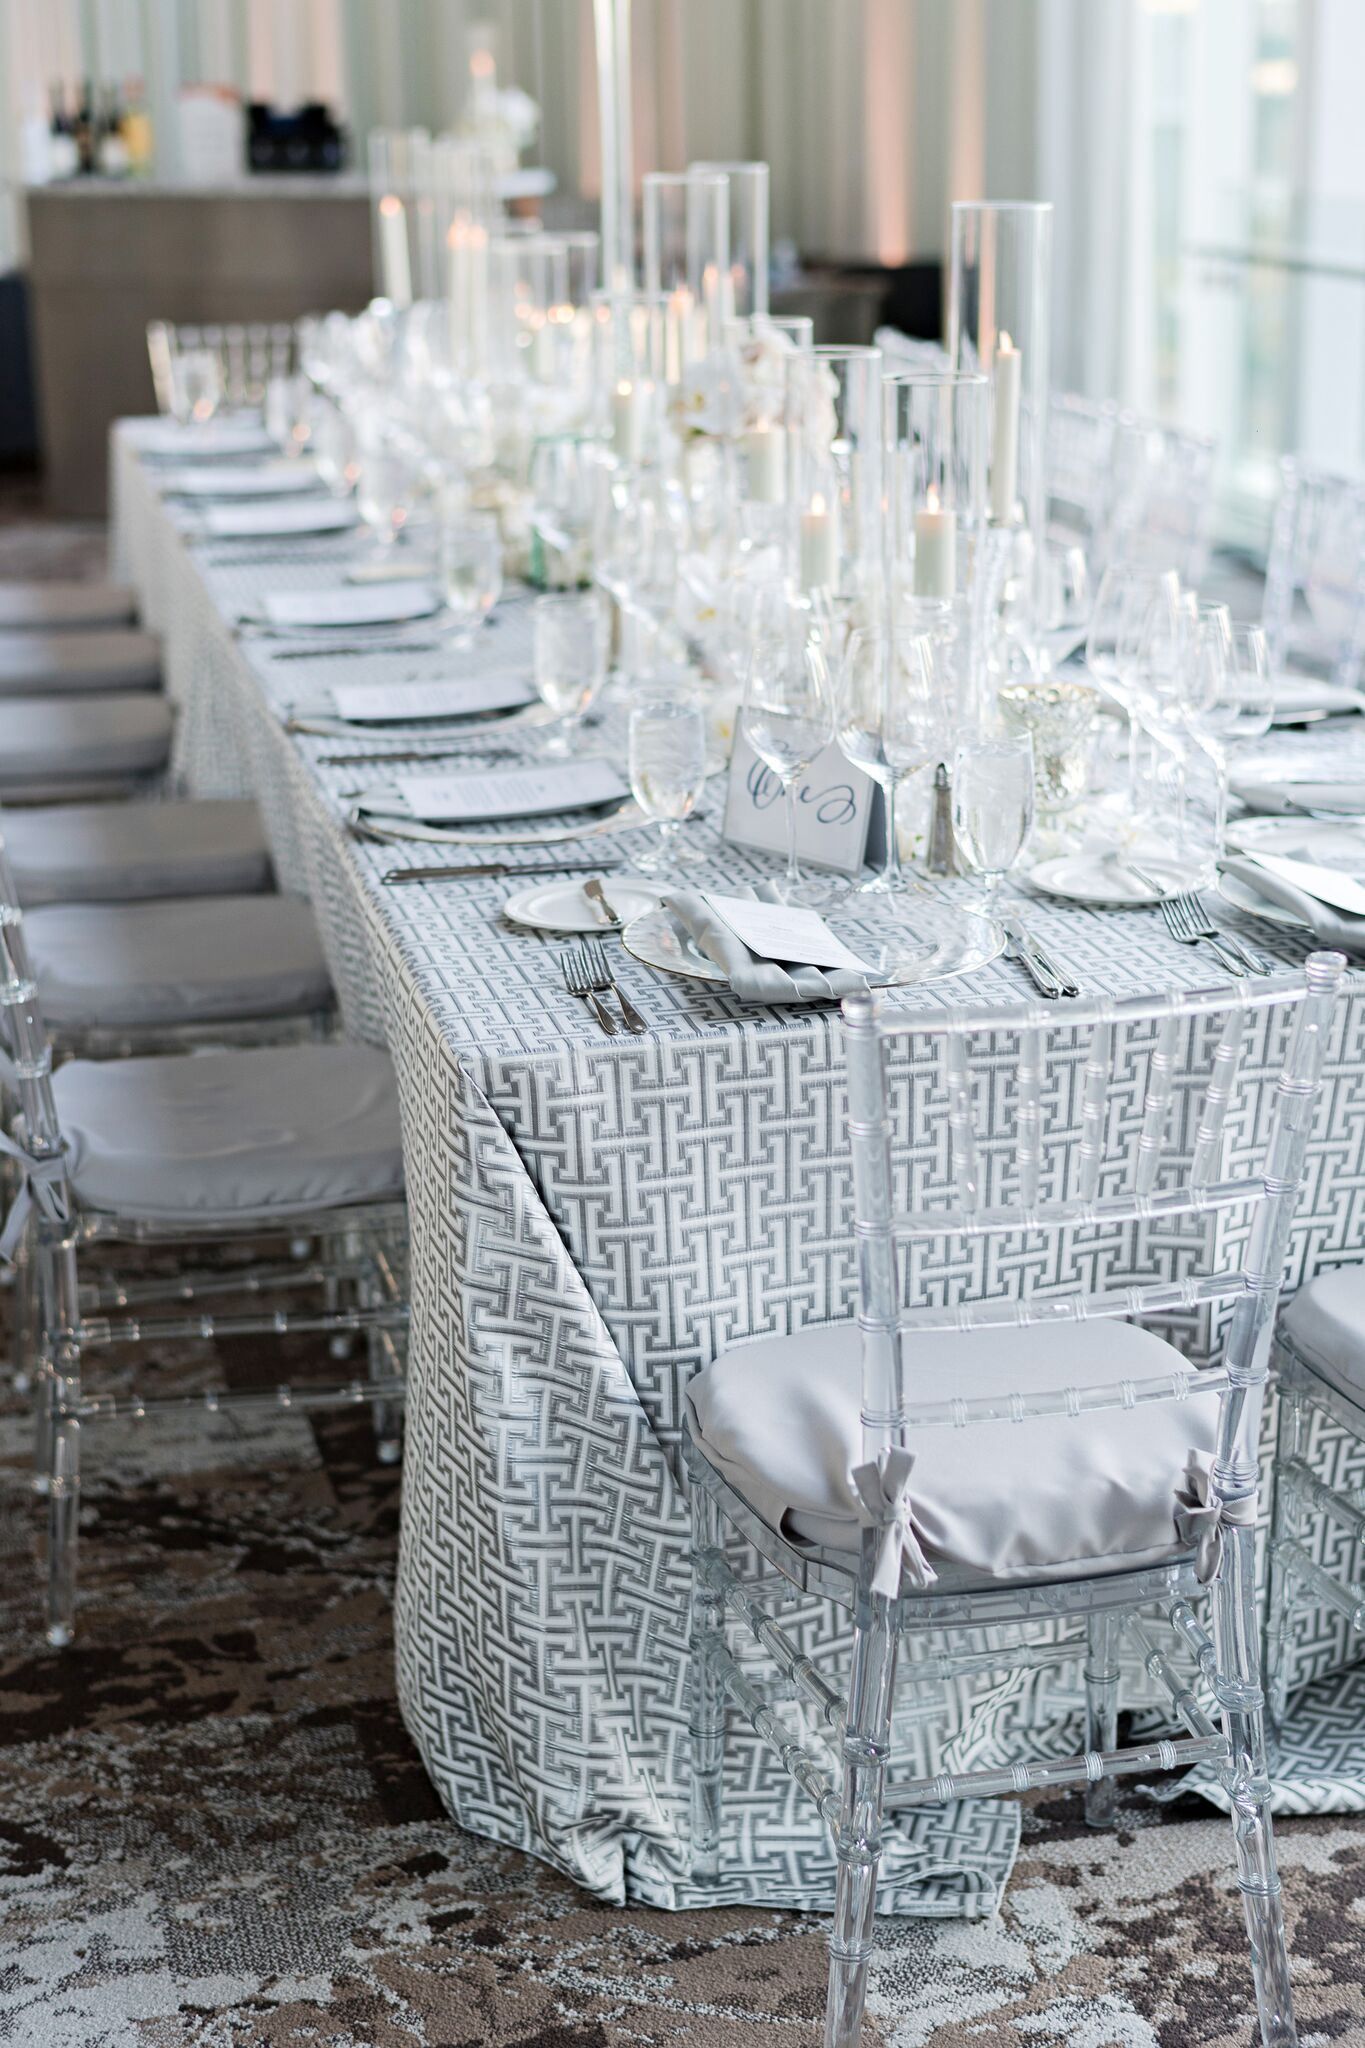 clear chiavari chairs chair upside down orlando wedding and party rentals check them out more on our website by clicking the photo or at orlandoweddingandpartyrentals com